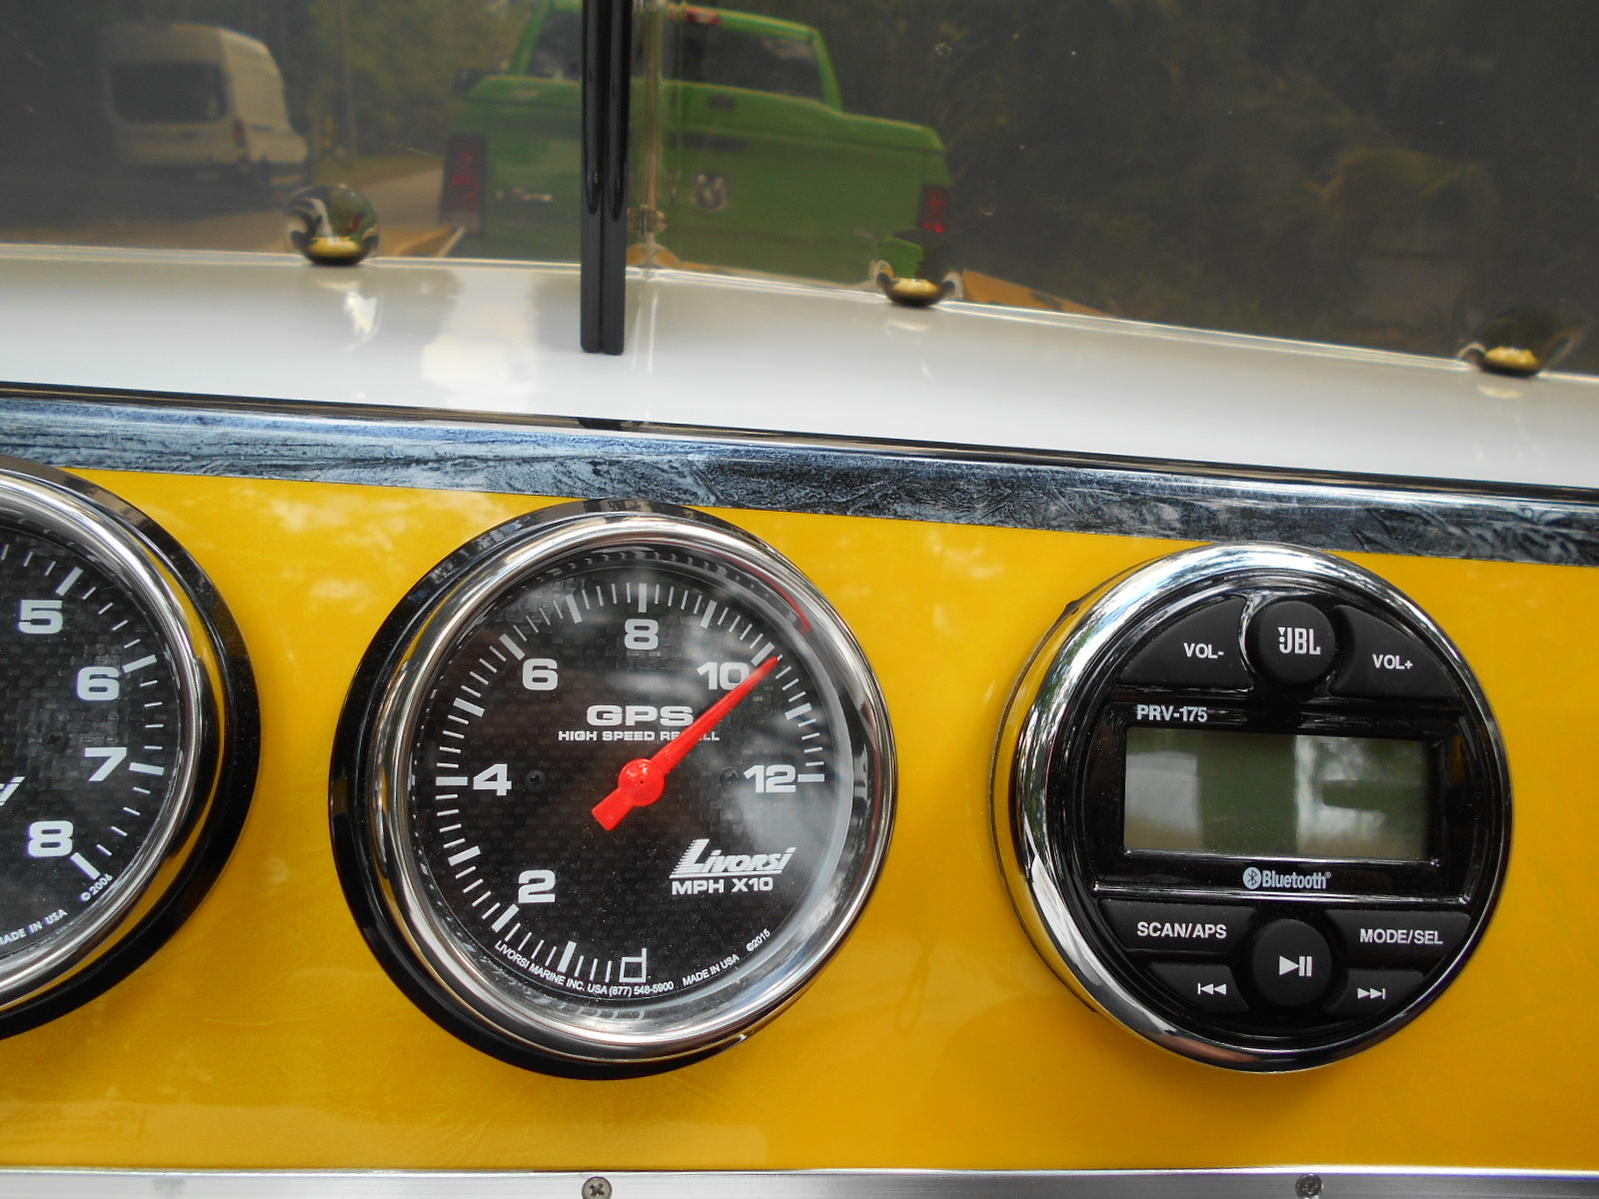 The black oversize Livorsi gauges really look striking against the yellow dash.